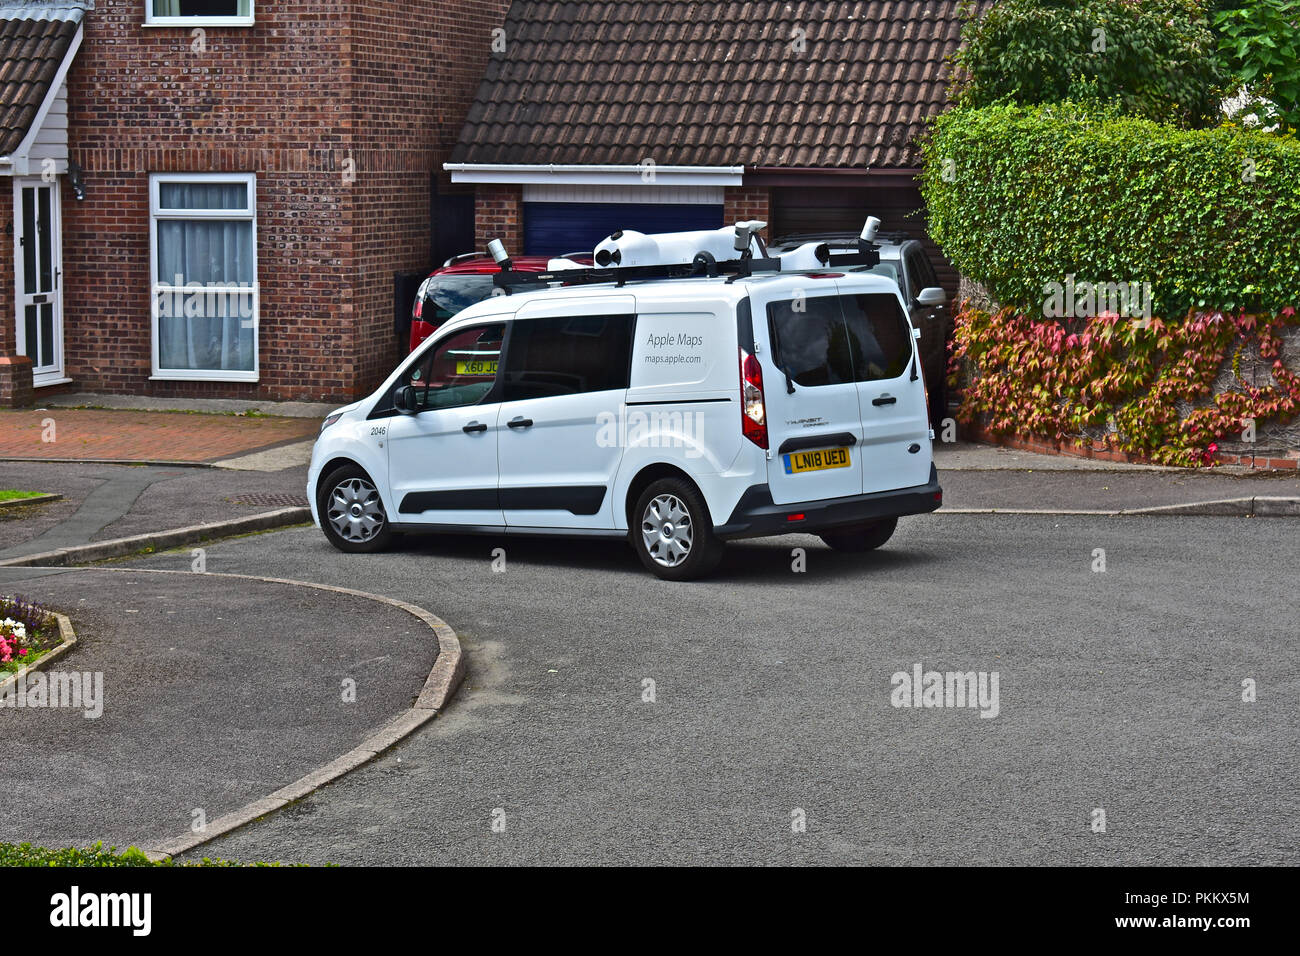 Apple Maps van seen in residential area of Bridgend S.Wales, gathering data to produce a rival to Google's Street View. Stock Photo